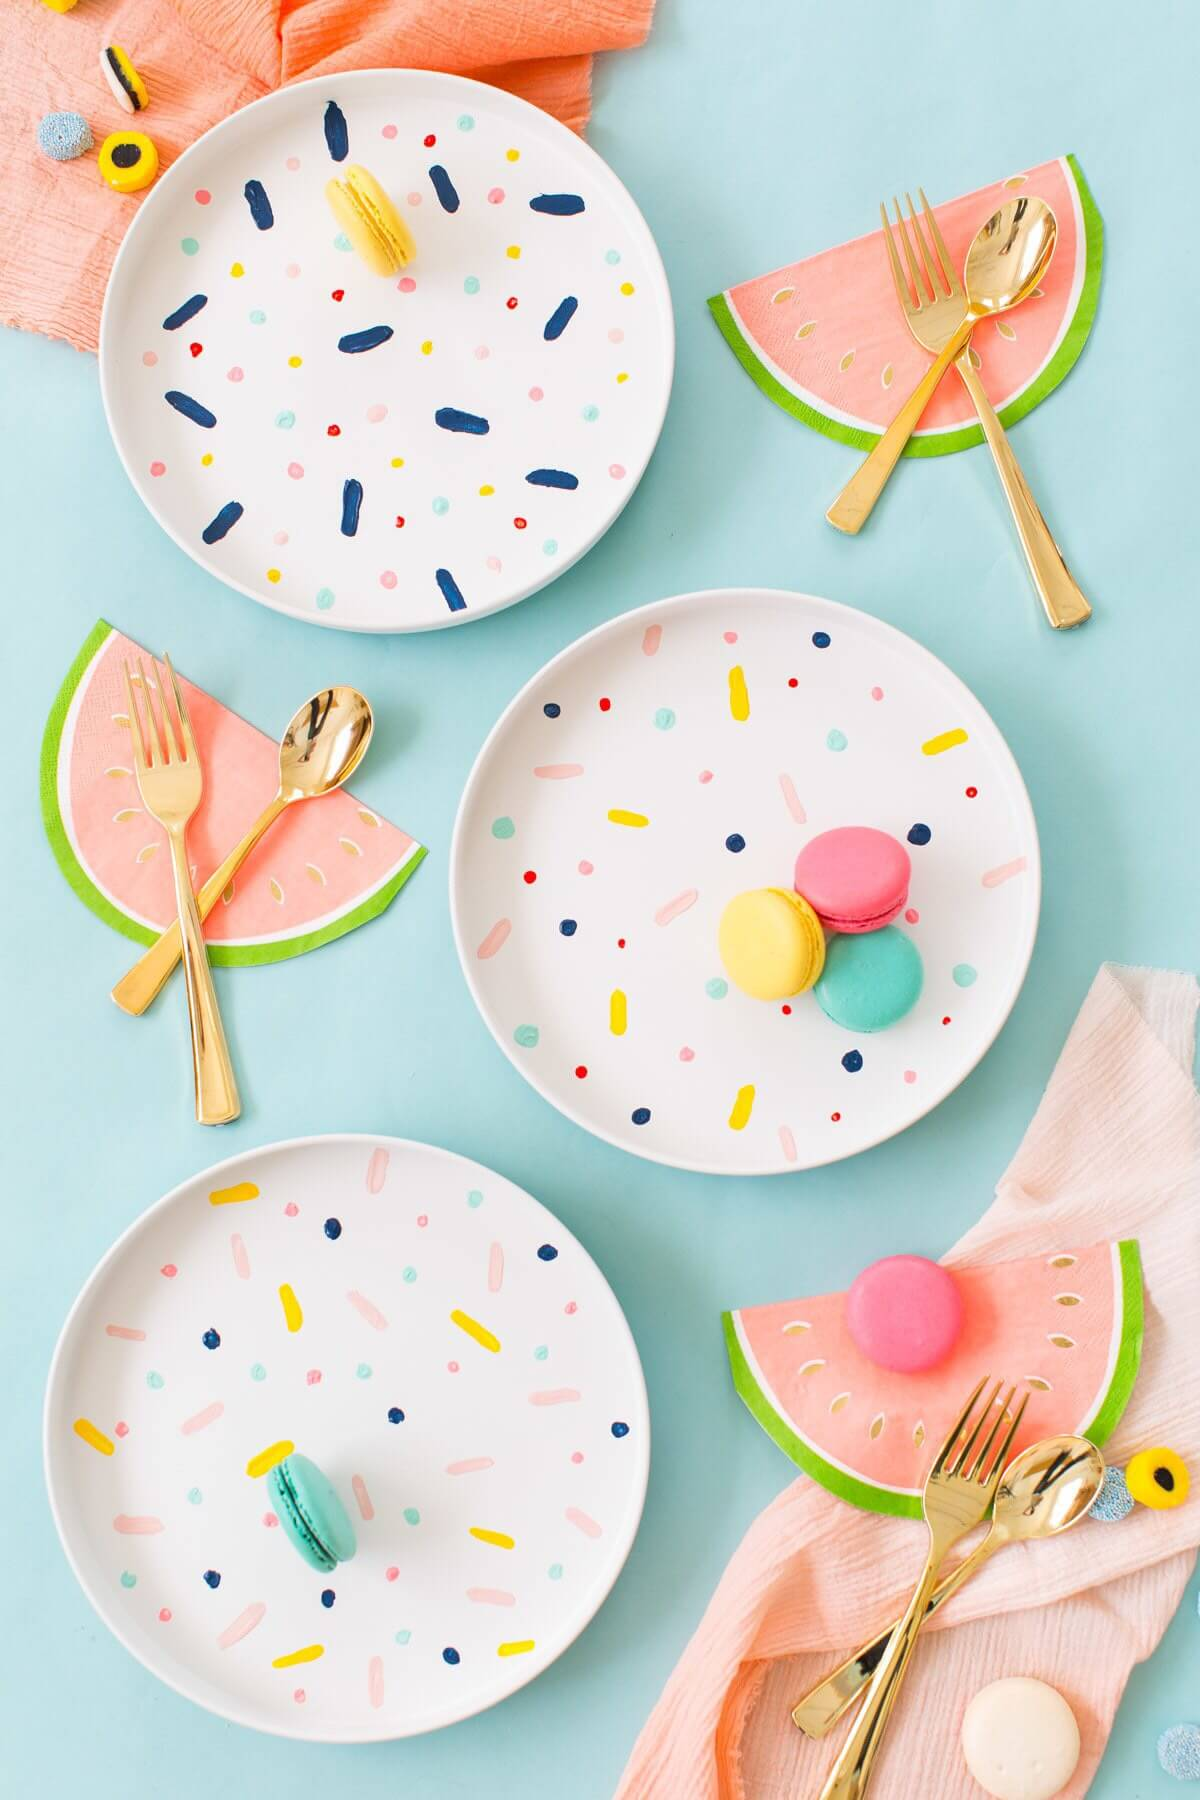 Fun and Festive Watermelons and Macaroons Table Decor